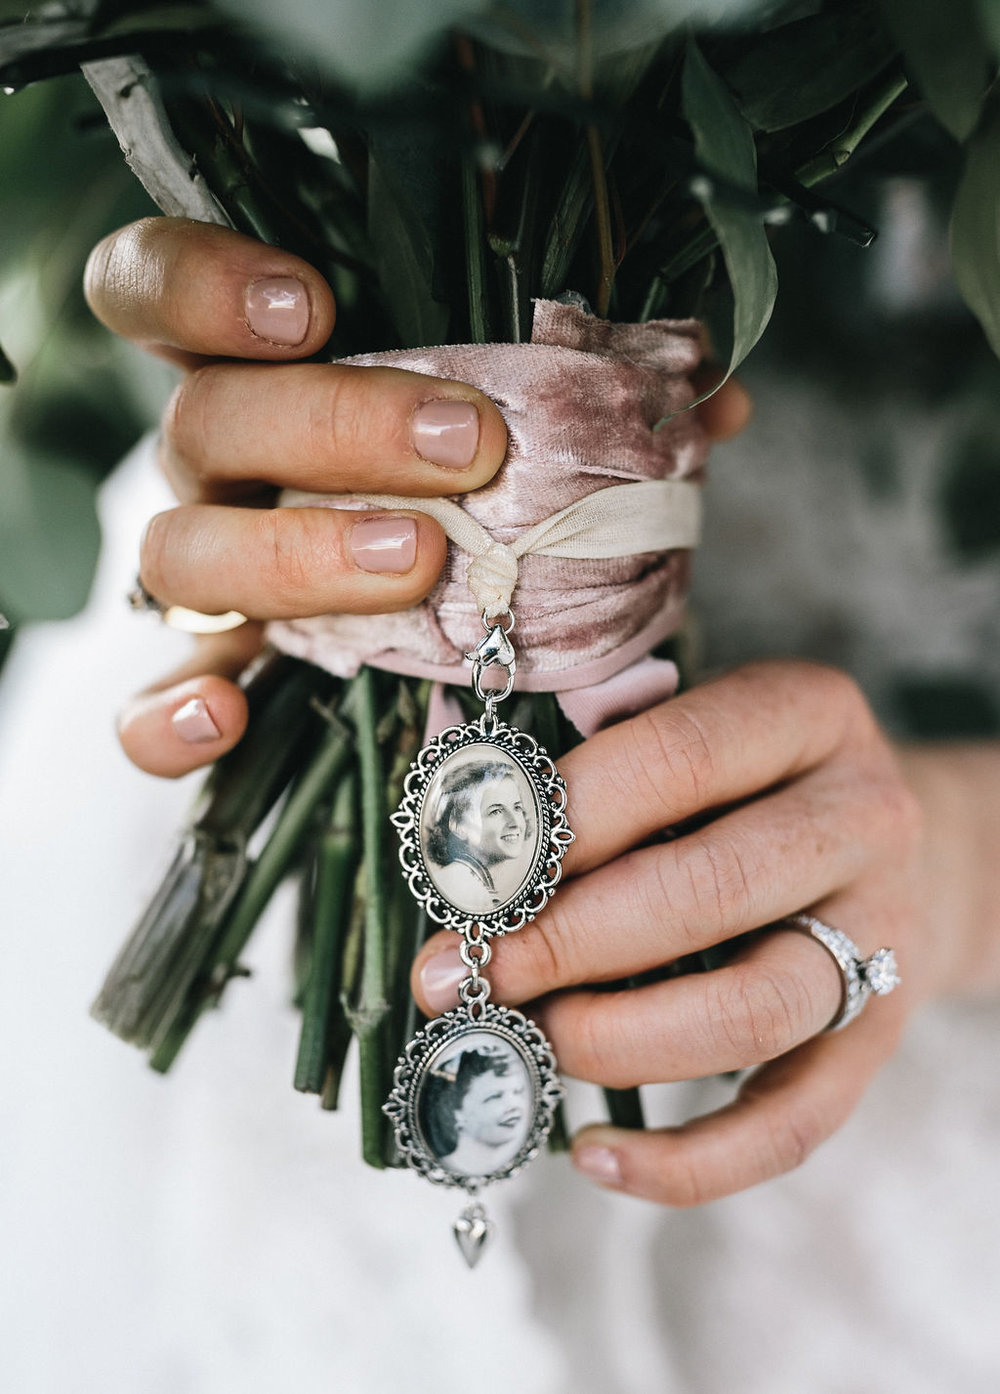 ivory_and_beau_savannah_bridal_shop_ivory_and_beau_couple_regan_and_brian_mackensey_alexander_photography_charles_h_morris_center_wedding_savannah_wedding_planner_savannah_florist_21.jpg